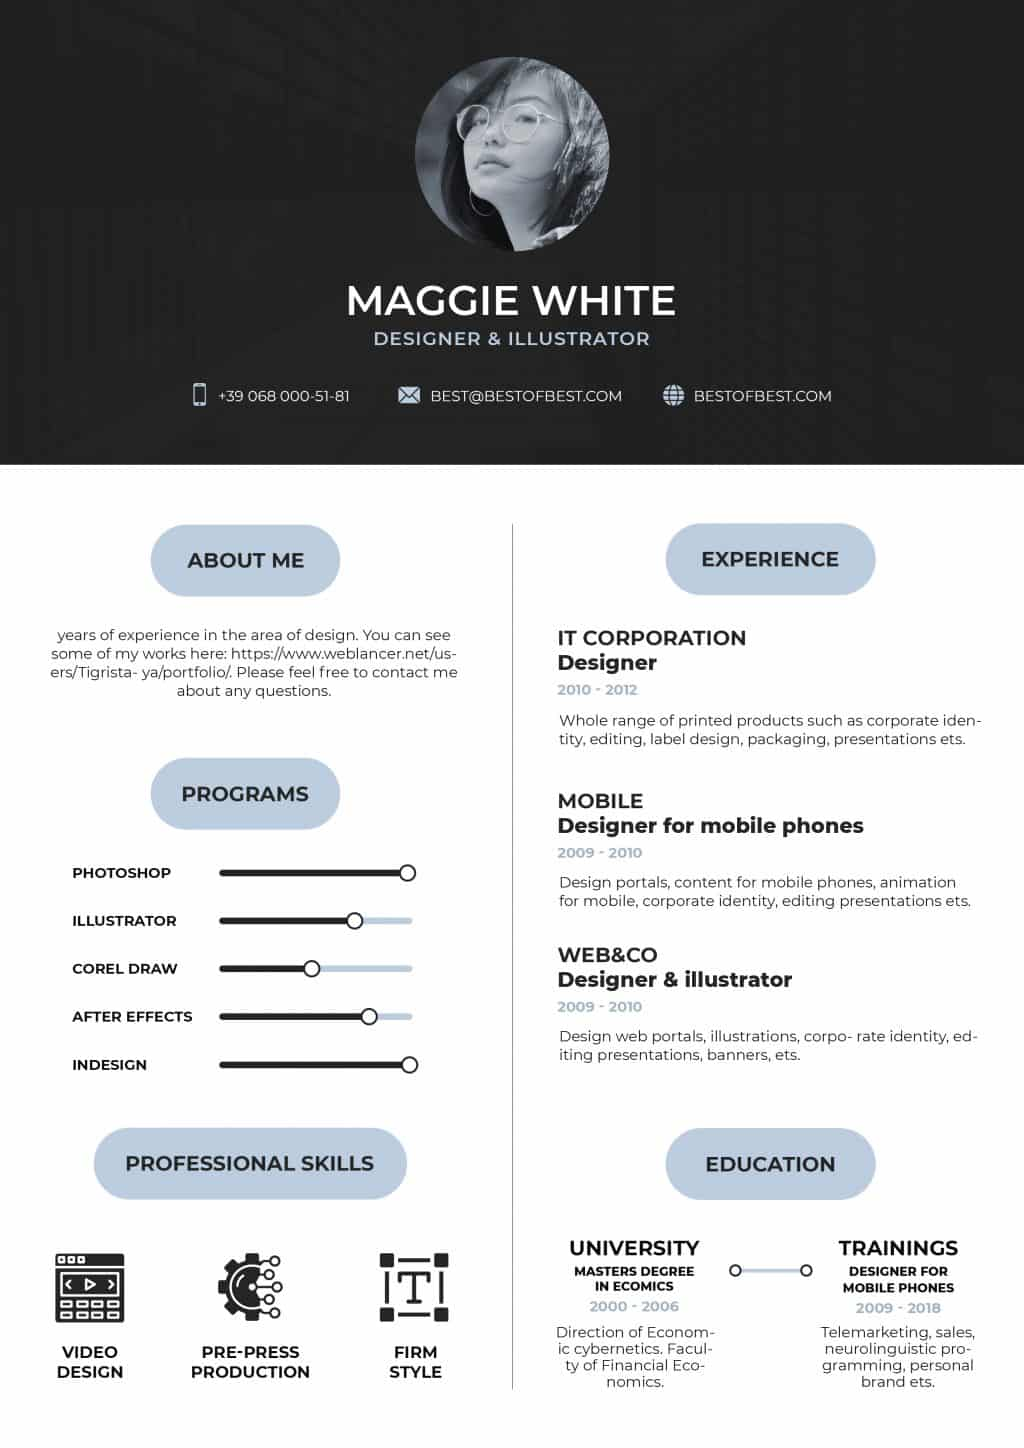 Best College Resume Templates 2020: 5 colors - $8 - resume 1